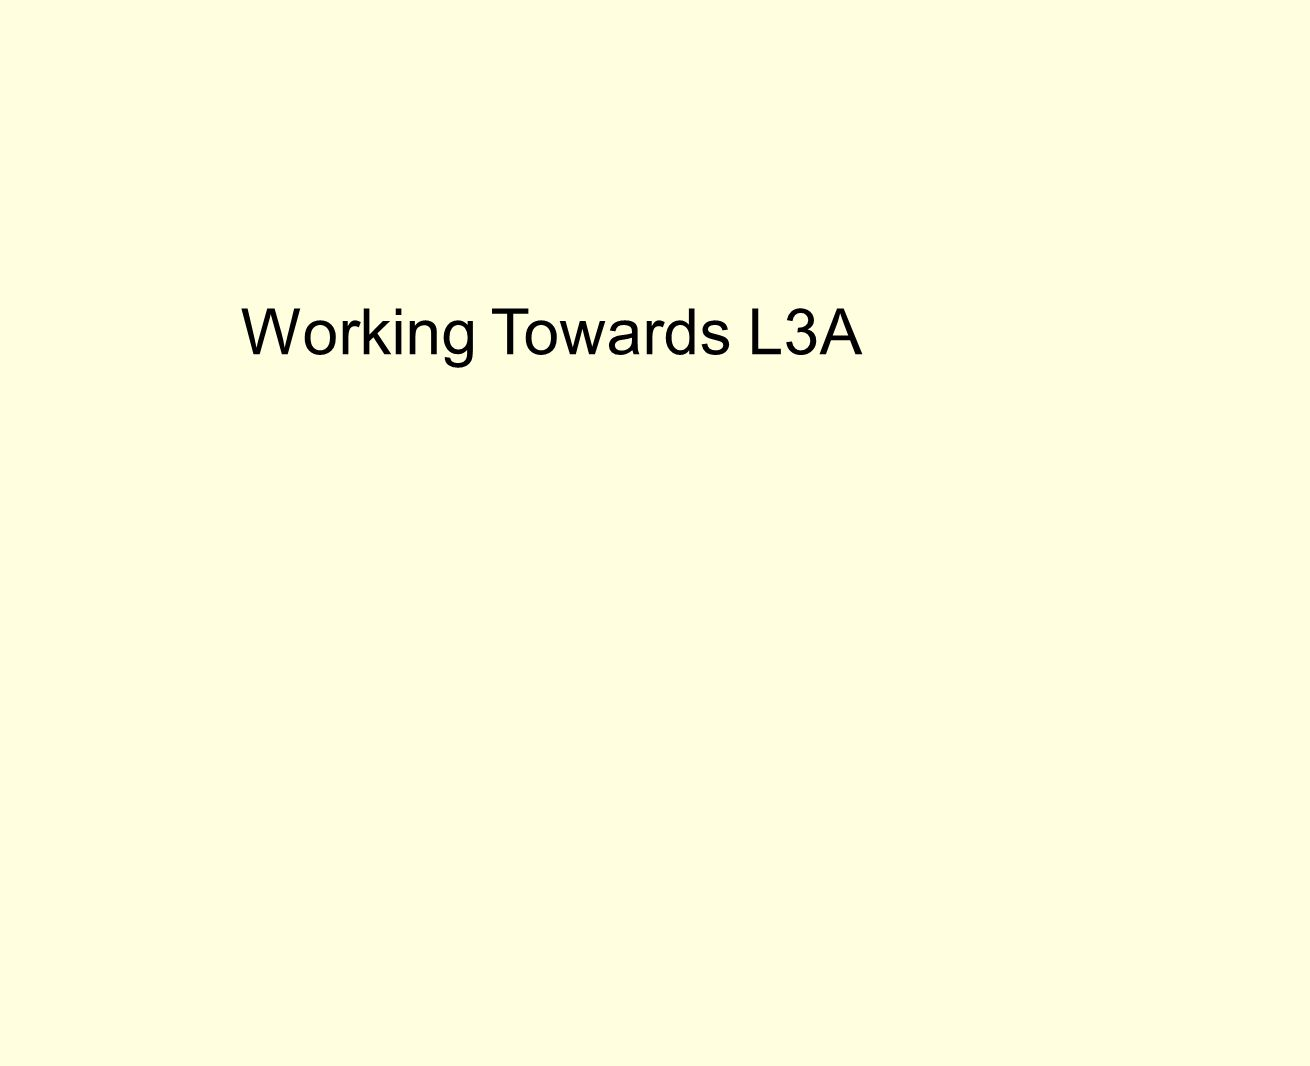 Working Towards L3A